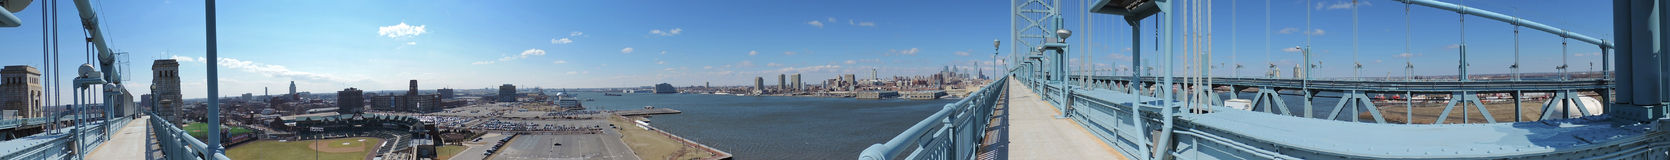 Philadelphia skyline with the Ben Franklin Bridge panoramic. The downtown Philadelphia and Camden skylines with the Delaware River as seen from the Ben Franklin Stock Photos